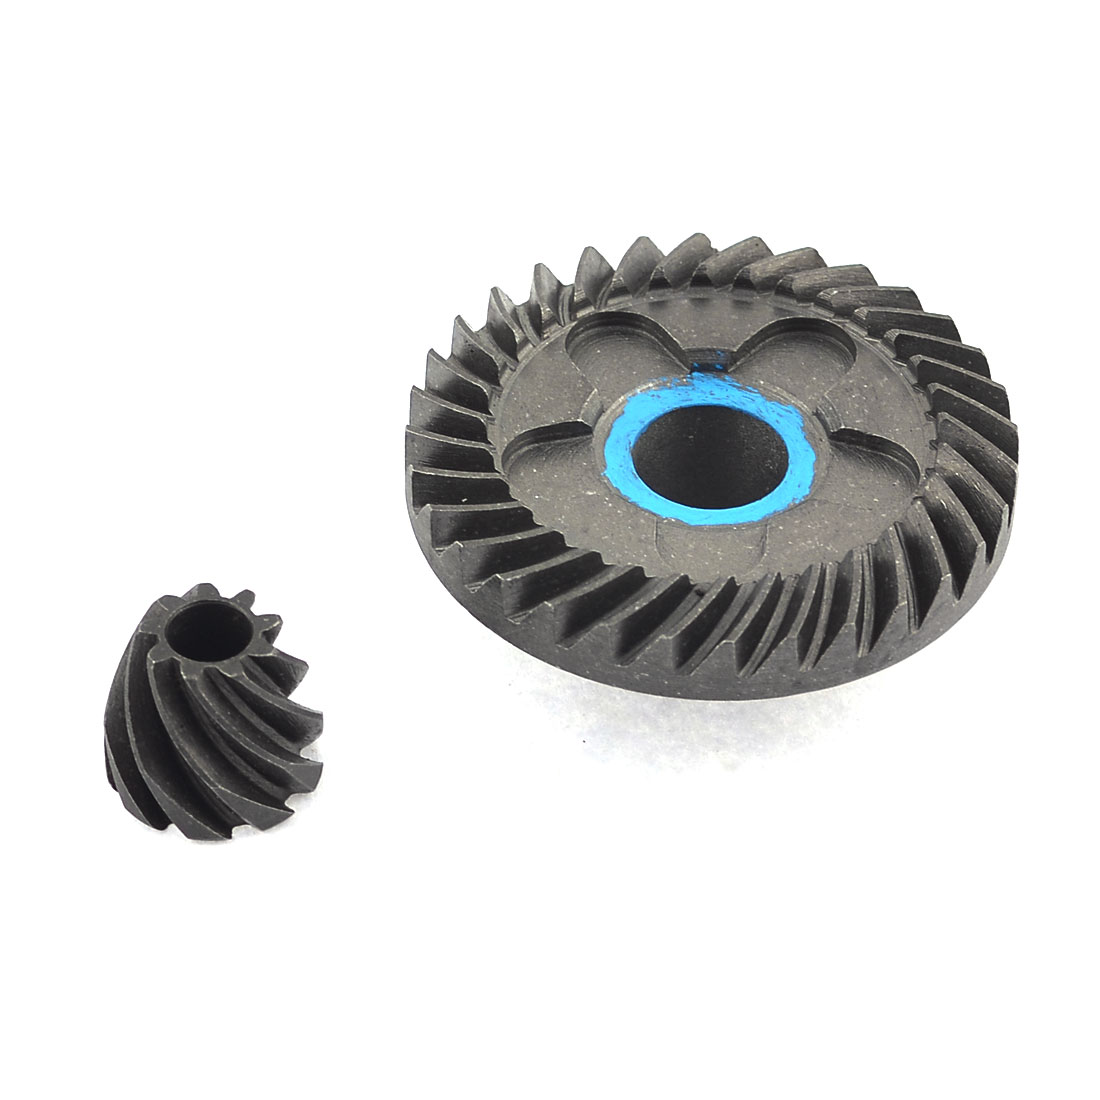 Spiral Bevel Gear Ring 45mm x 12mm x 17mm Pinion Set for Hitachi 100 Angle Grinder